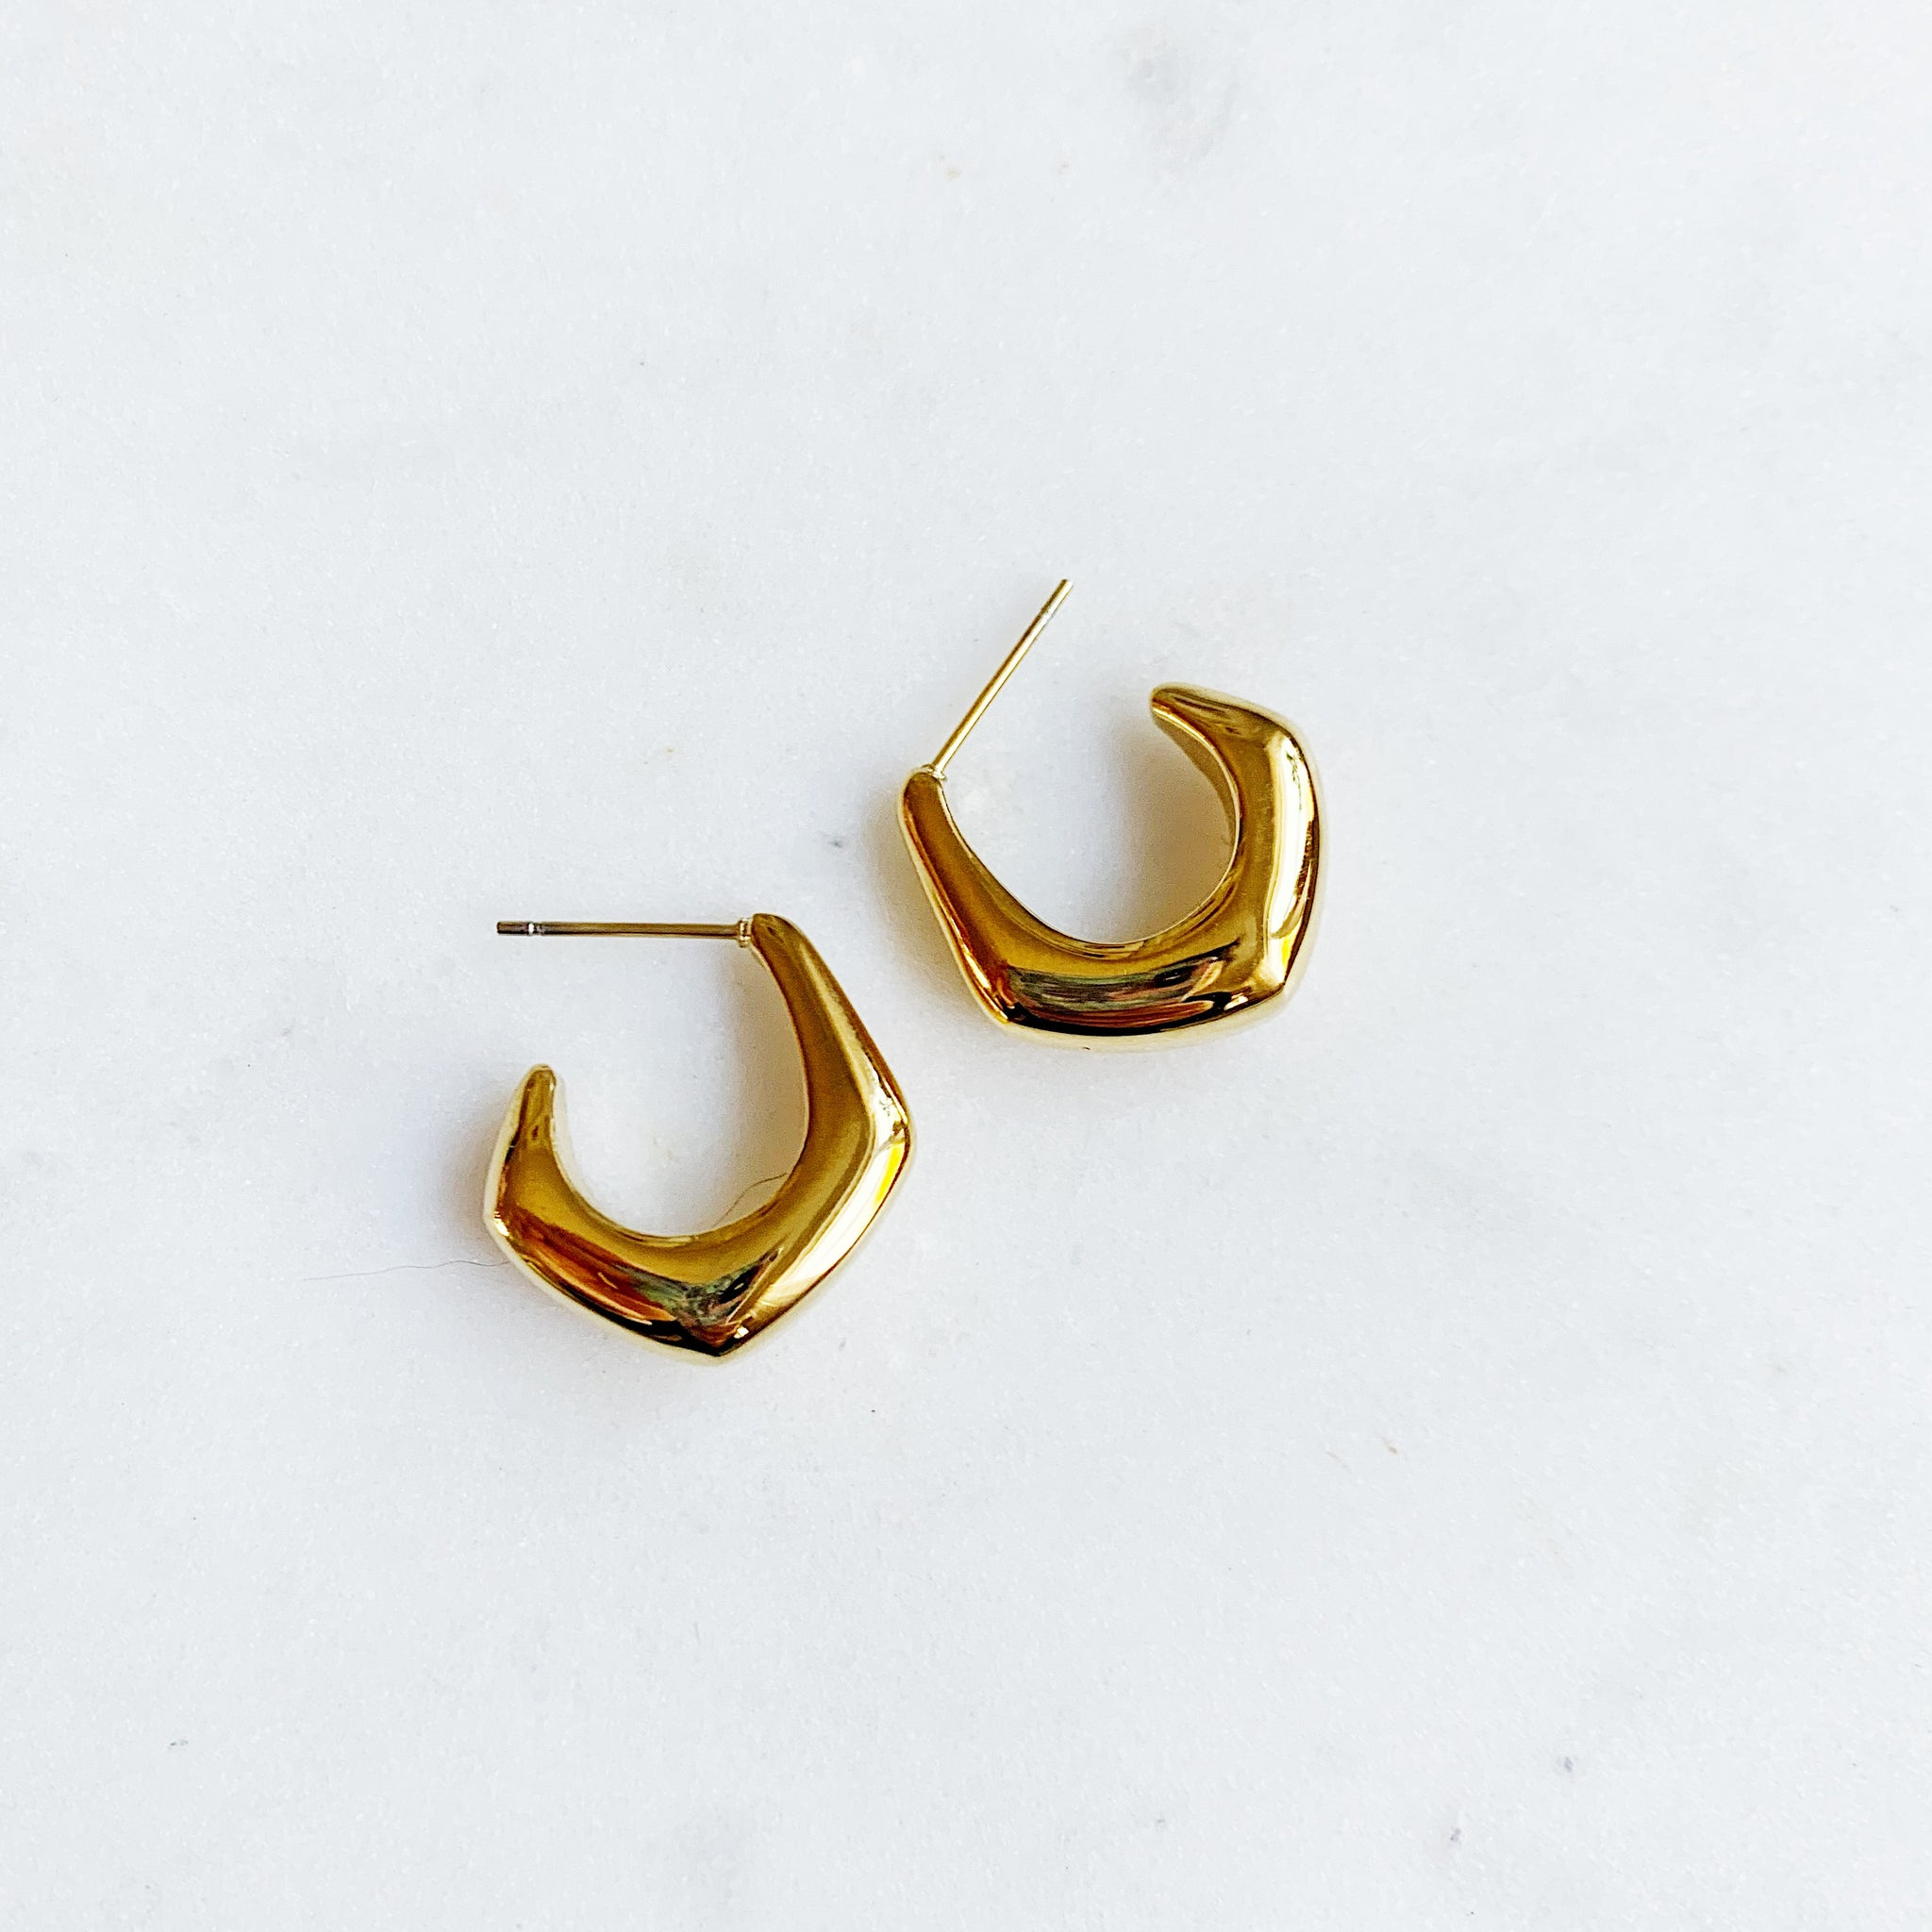 Geometric hoop earrings - Lily Lough Jewelry